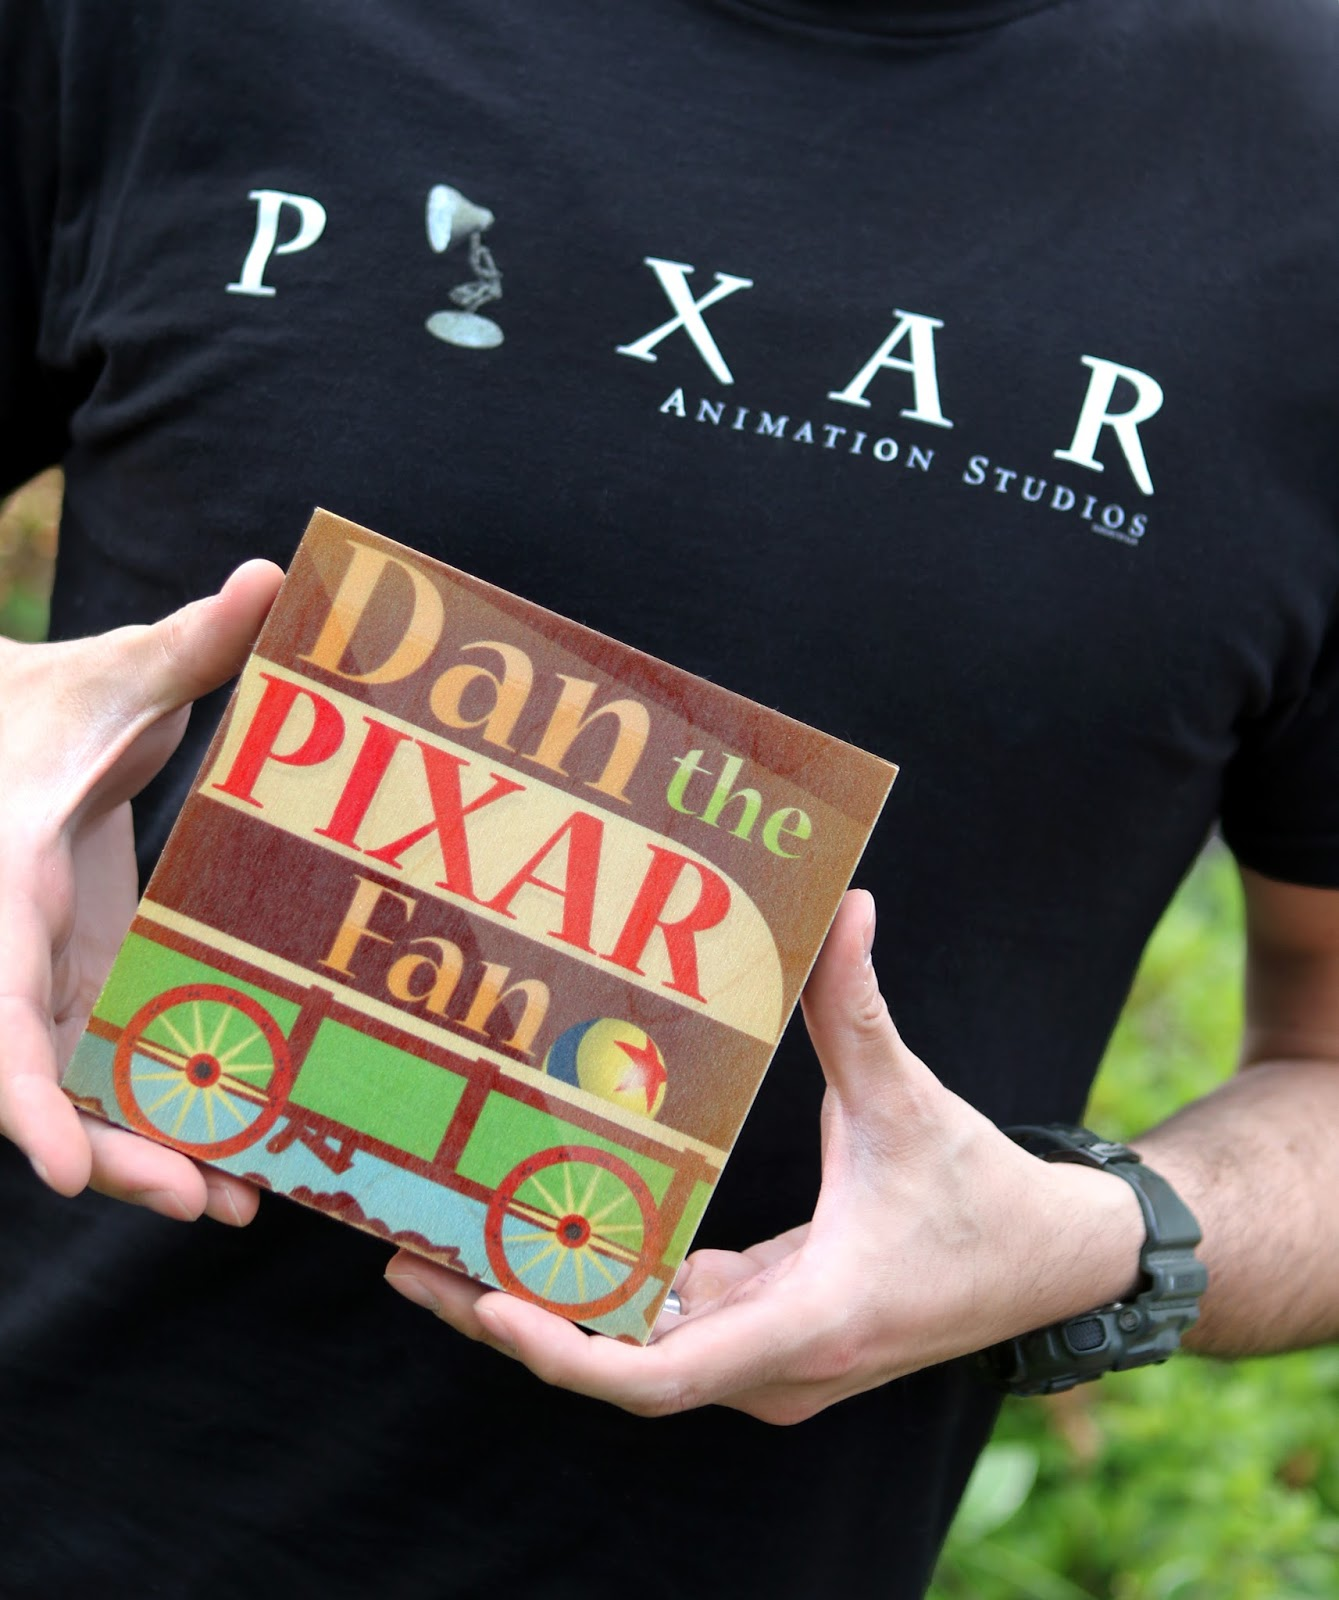 dan the pixar fan